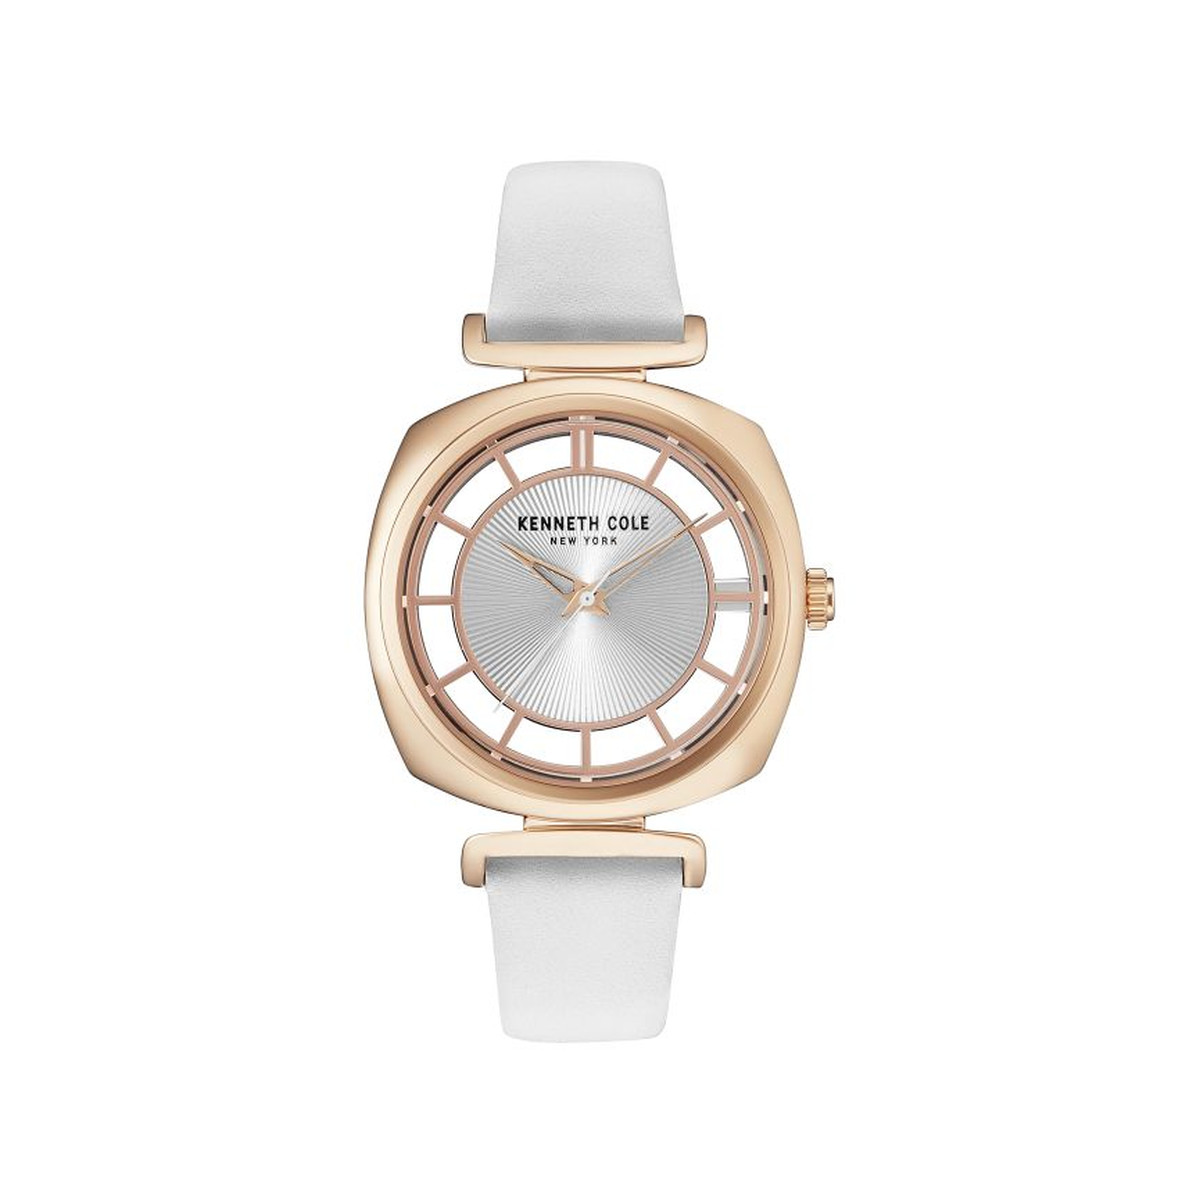 Montre Kenneth Cole femme doré rose cuir blanc